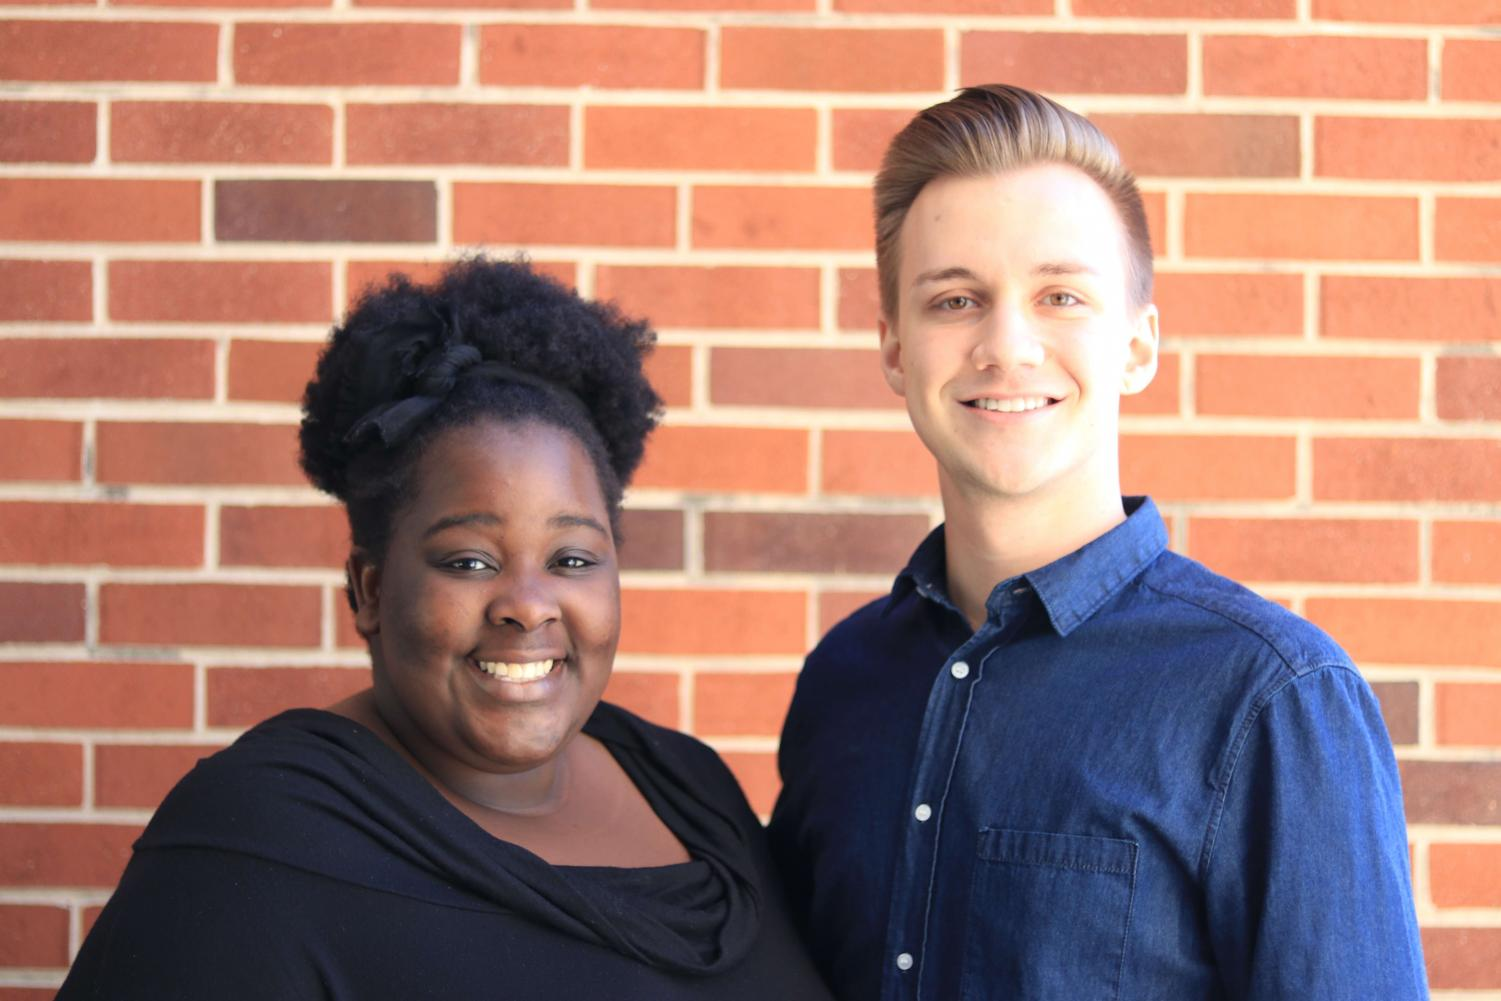 Elected President and Vice President of Student Senate Janet Irankunda ('19) and Wyatt Anians ('19).